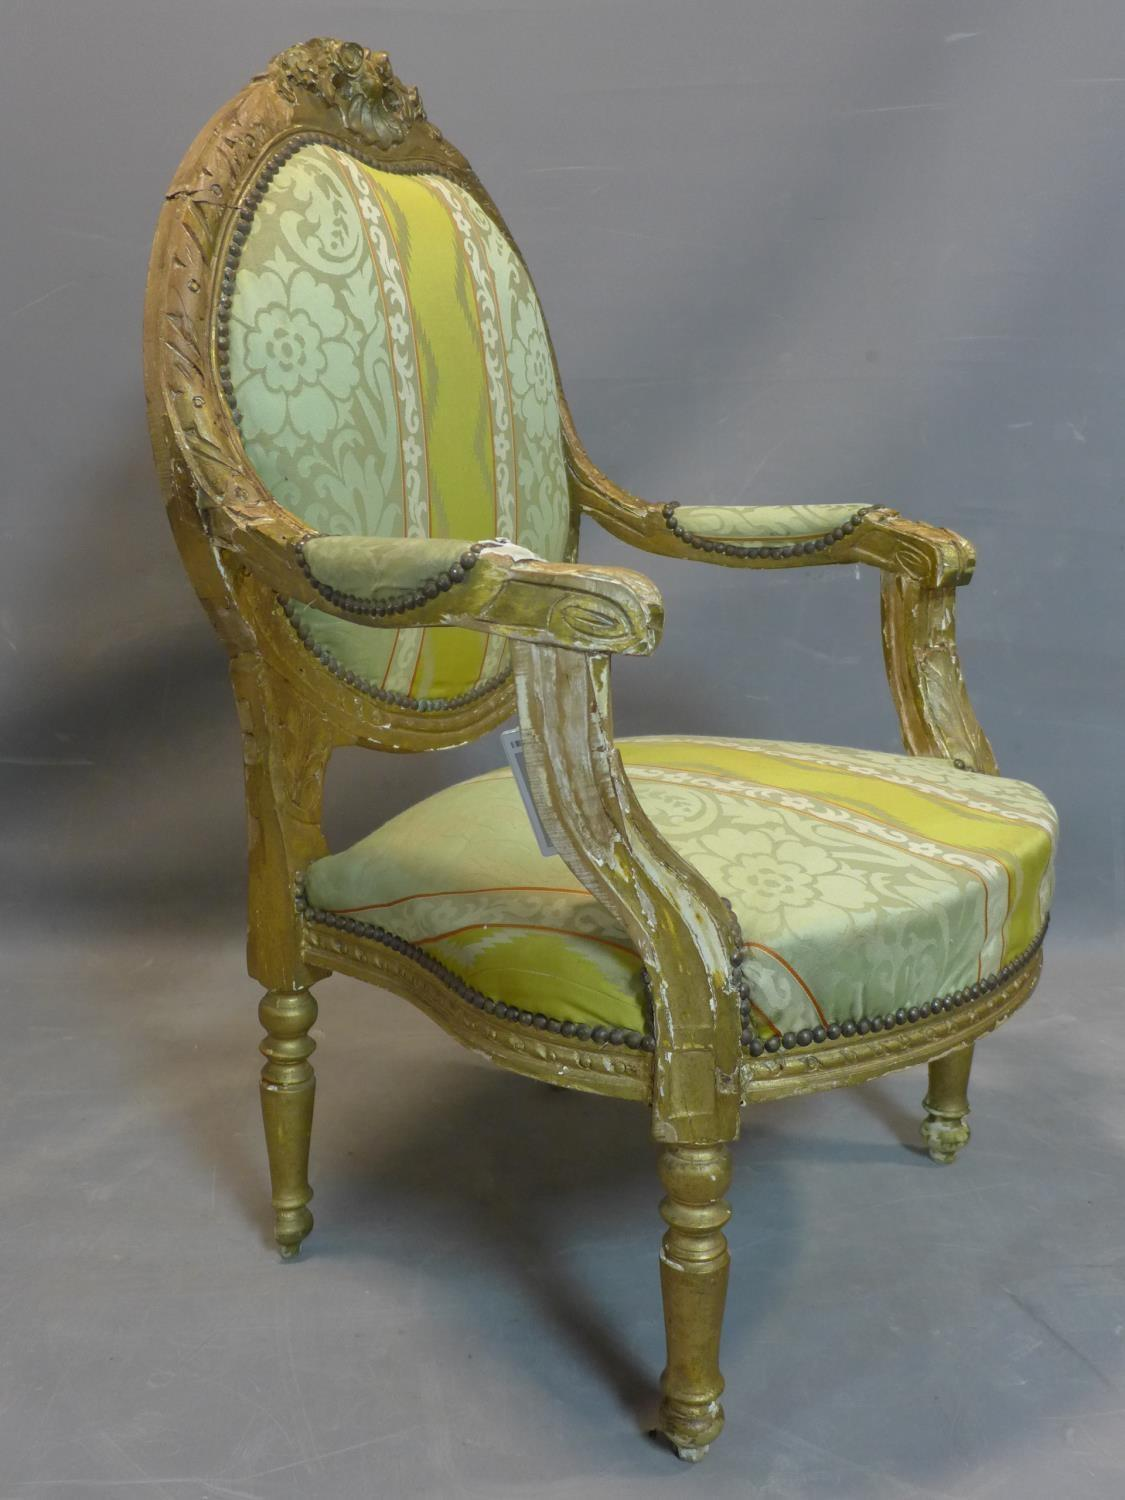 Lot 82 - A 19th century French Louis XVI style fauteuil armchair, with striped floral upholstery, carved